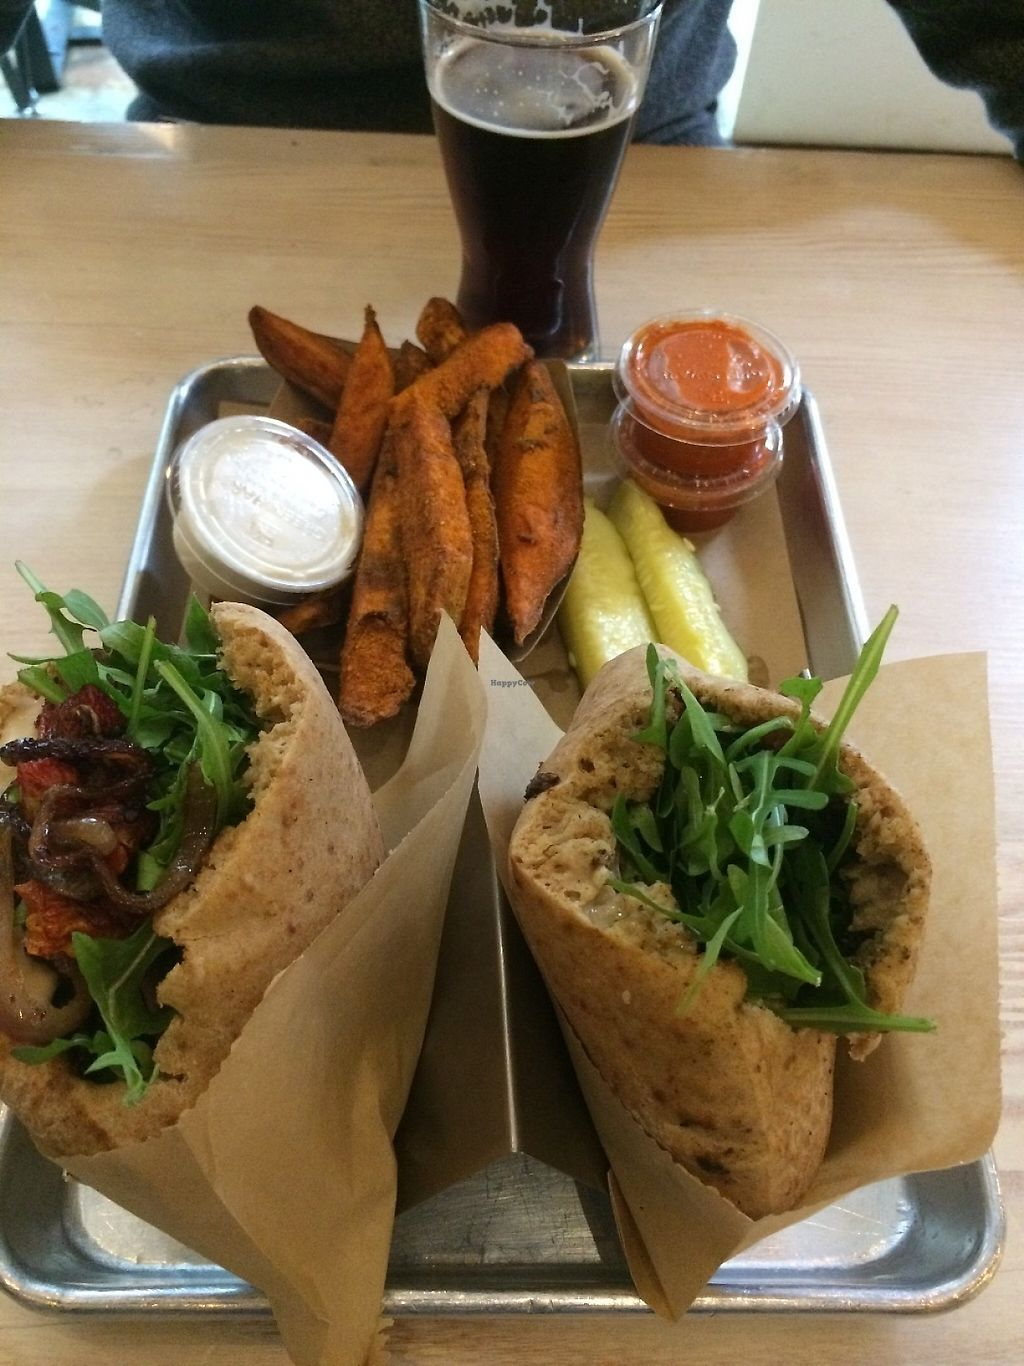 """Photo of Shouk  by <a href=""""/members/profile/MyGreenTongue"""">MyGreenTongue</a> <br/>Burger, Pita, Chips and Beer <br/> May 24, 2017  - <a href='/contact/abuse/image/73108/262179'>Report</a>"""